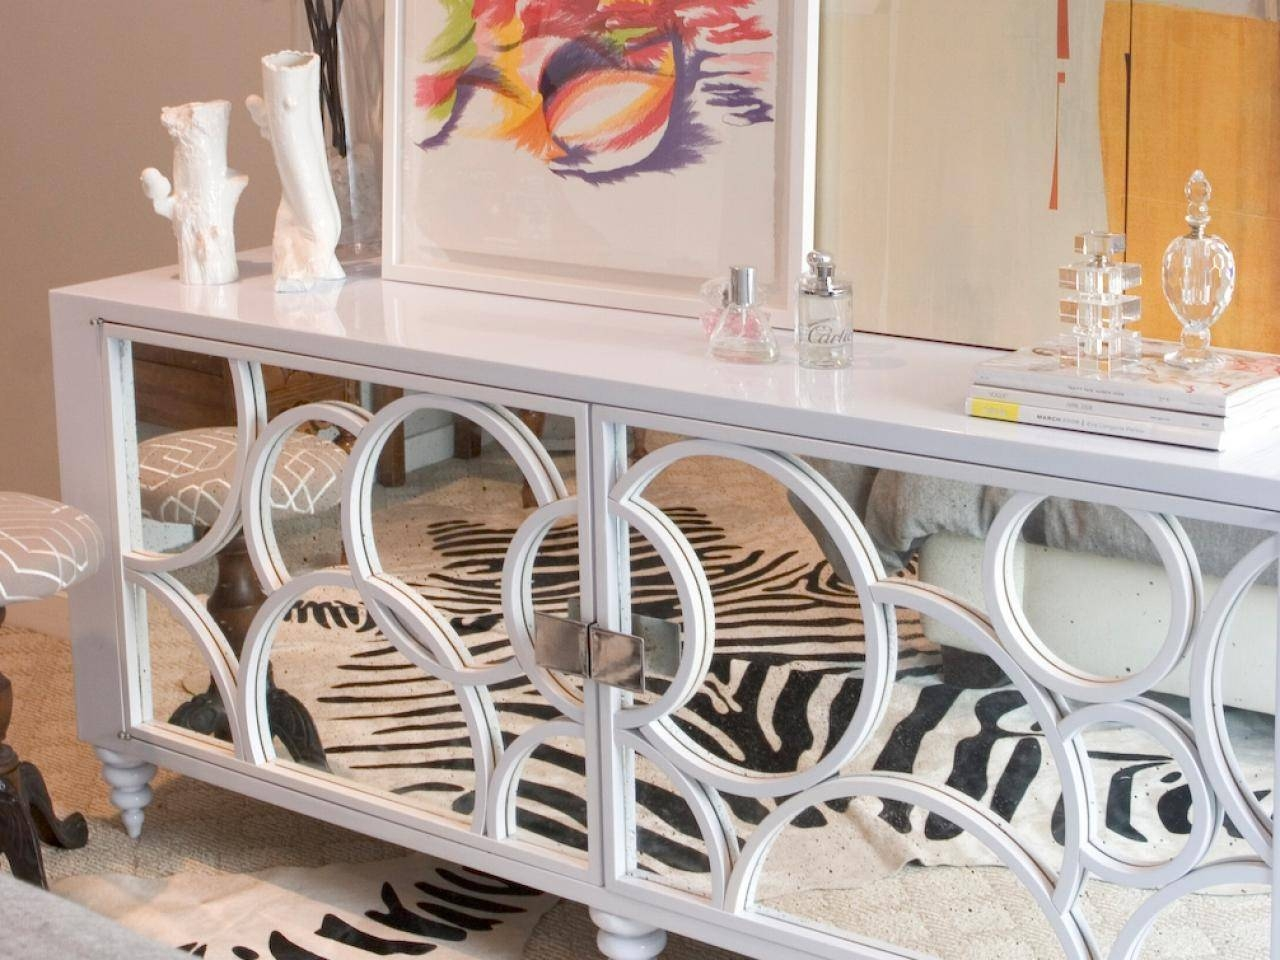 Mirrored Sideboards For A Master Bedroom Decor With 2017 Mirror Sideboards (View 8 of 15)